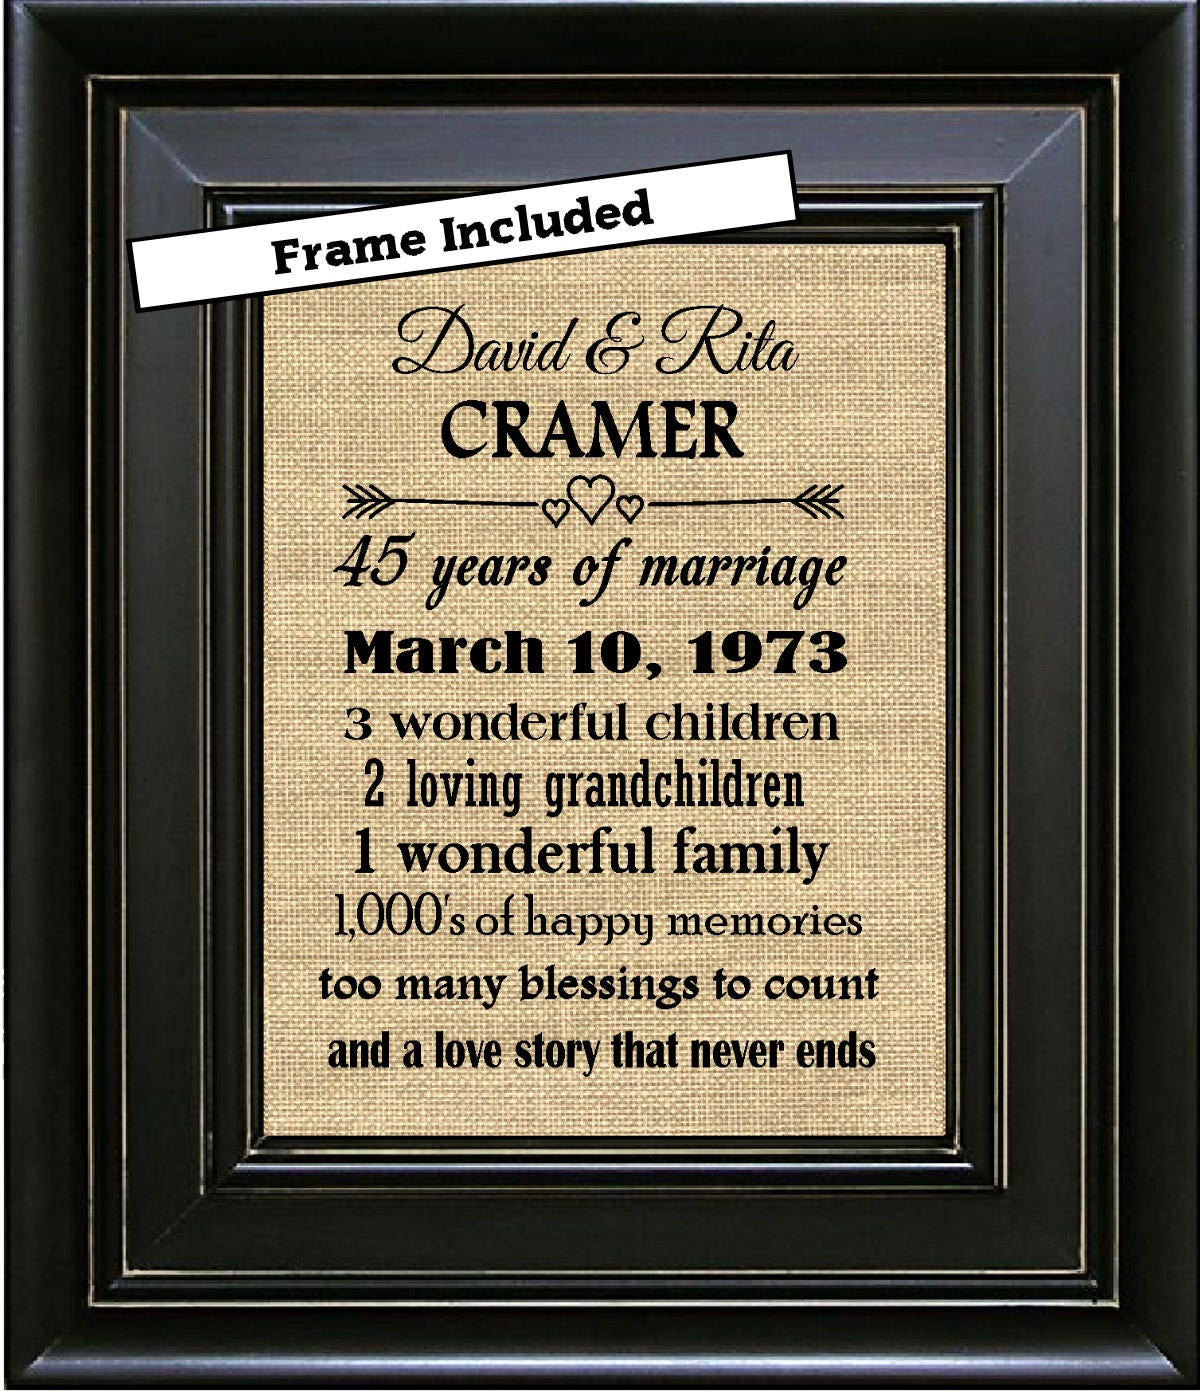 45 Wedding Anniversary Gift For Parents: FRAMED 45th Wedding Anniversary/45th Anniversary Gifts/45th